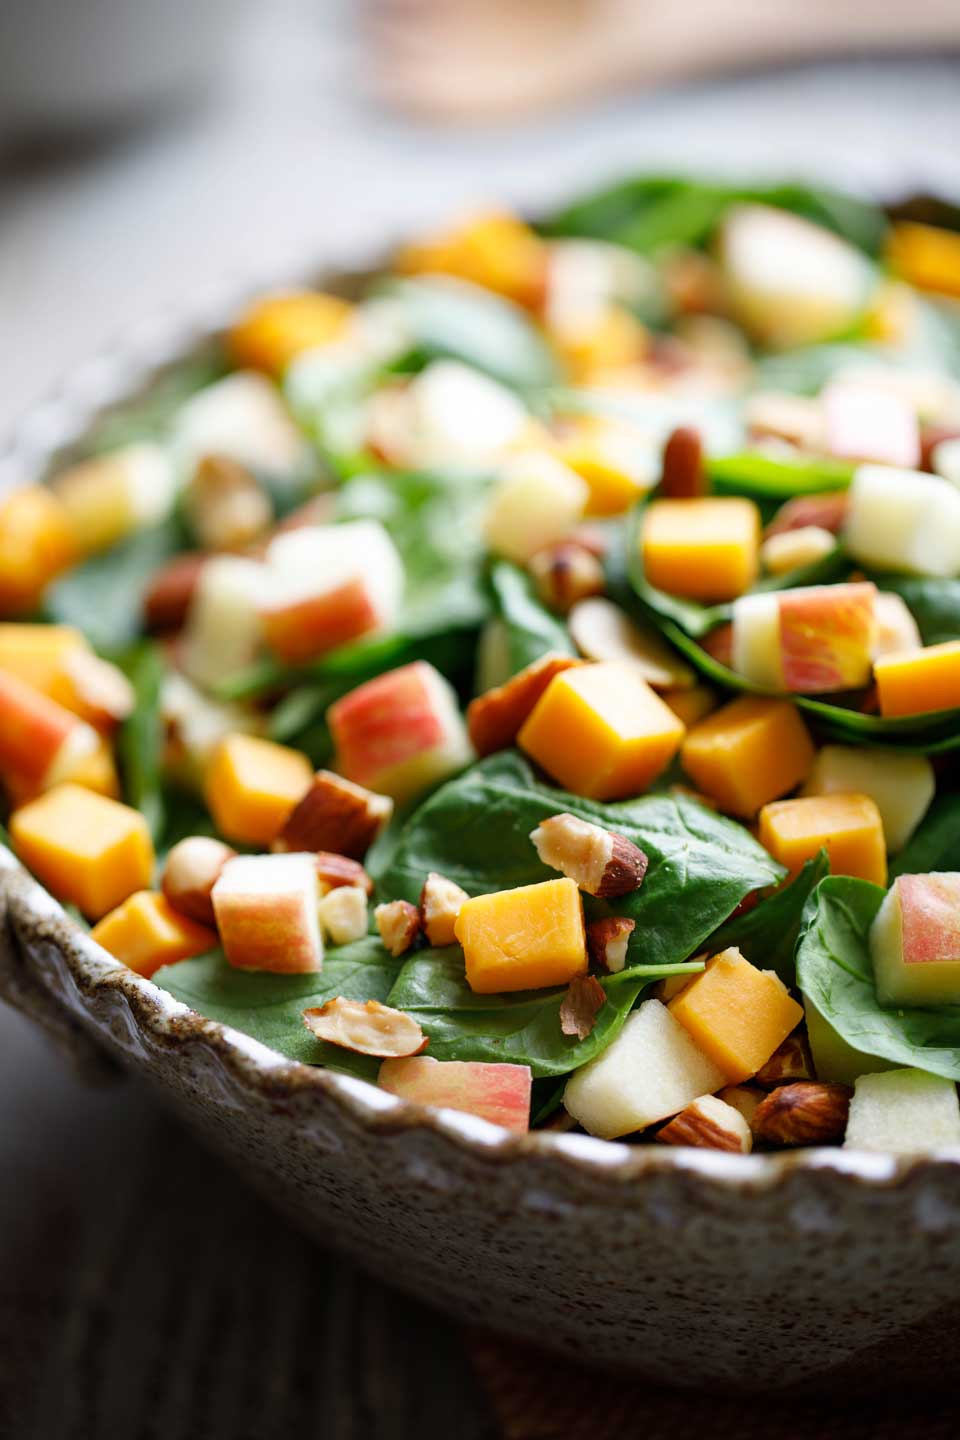 Spinach Salad with Apple, Cheddar and Smoked Almonds Recipe